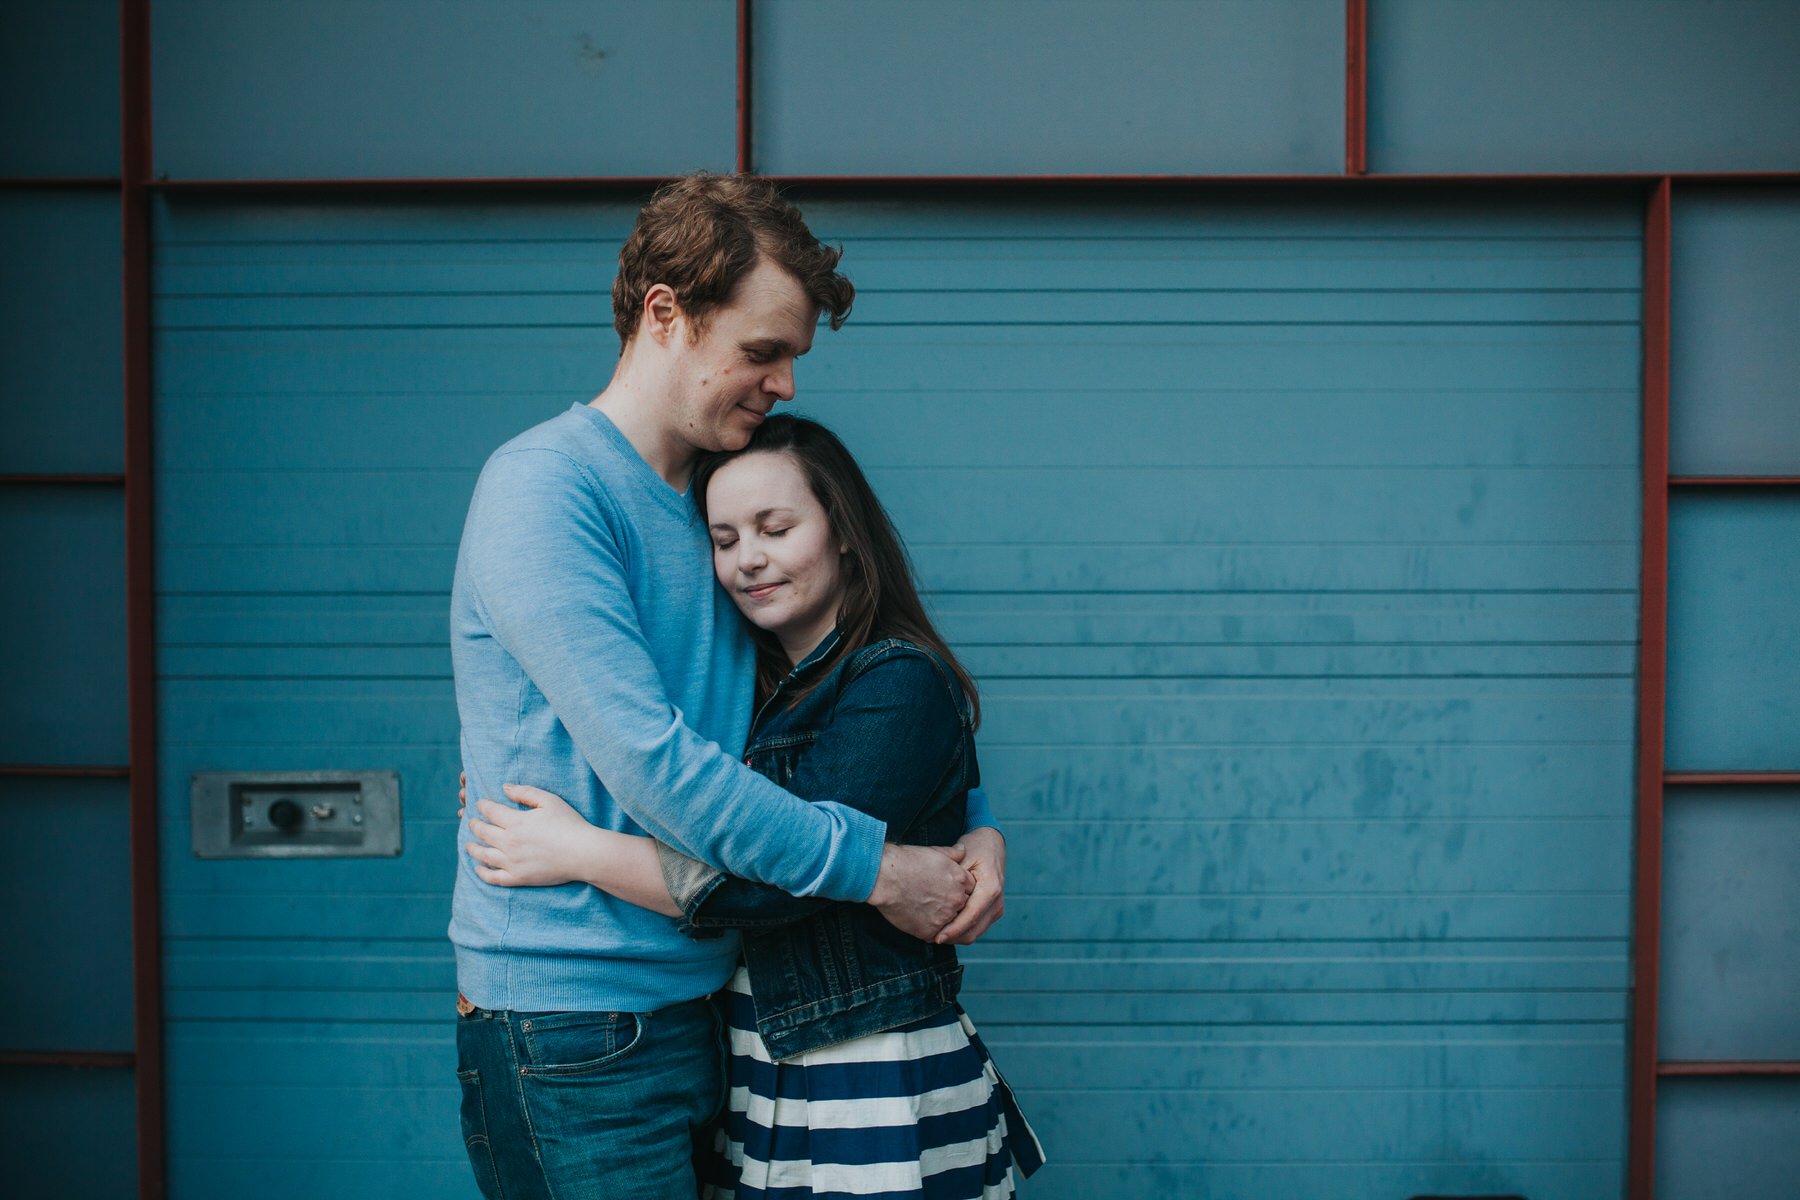 80-Quirky-engagement-London-peaceful-romantic-hug-blue-background.jpg